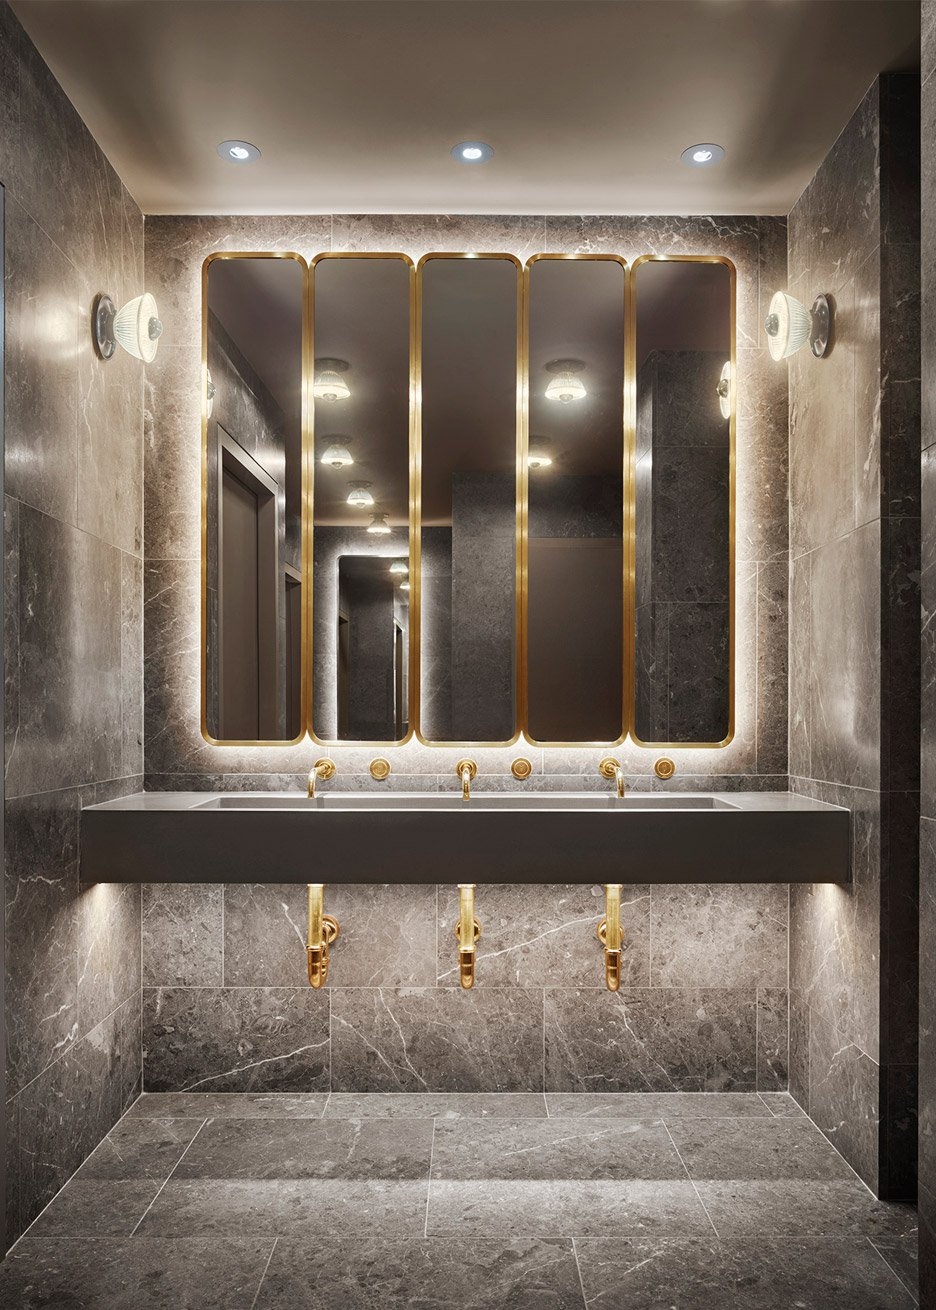 Stunning Lighting Designs Shine in New York's 11 Howard Hotel Interior 1 lighting design Stunning Lighting Designs Shine in New York's 11 Howard Hotel Interior Stunning Lighting Designs Shine in New Yorks 11 Howard Hotel Interior 10